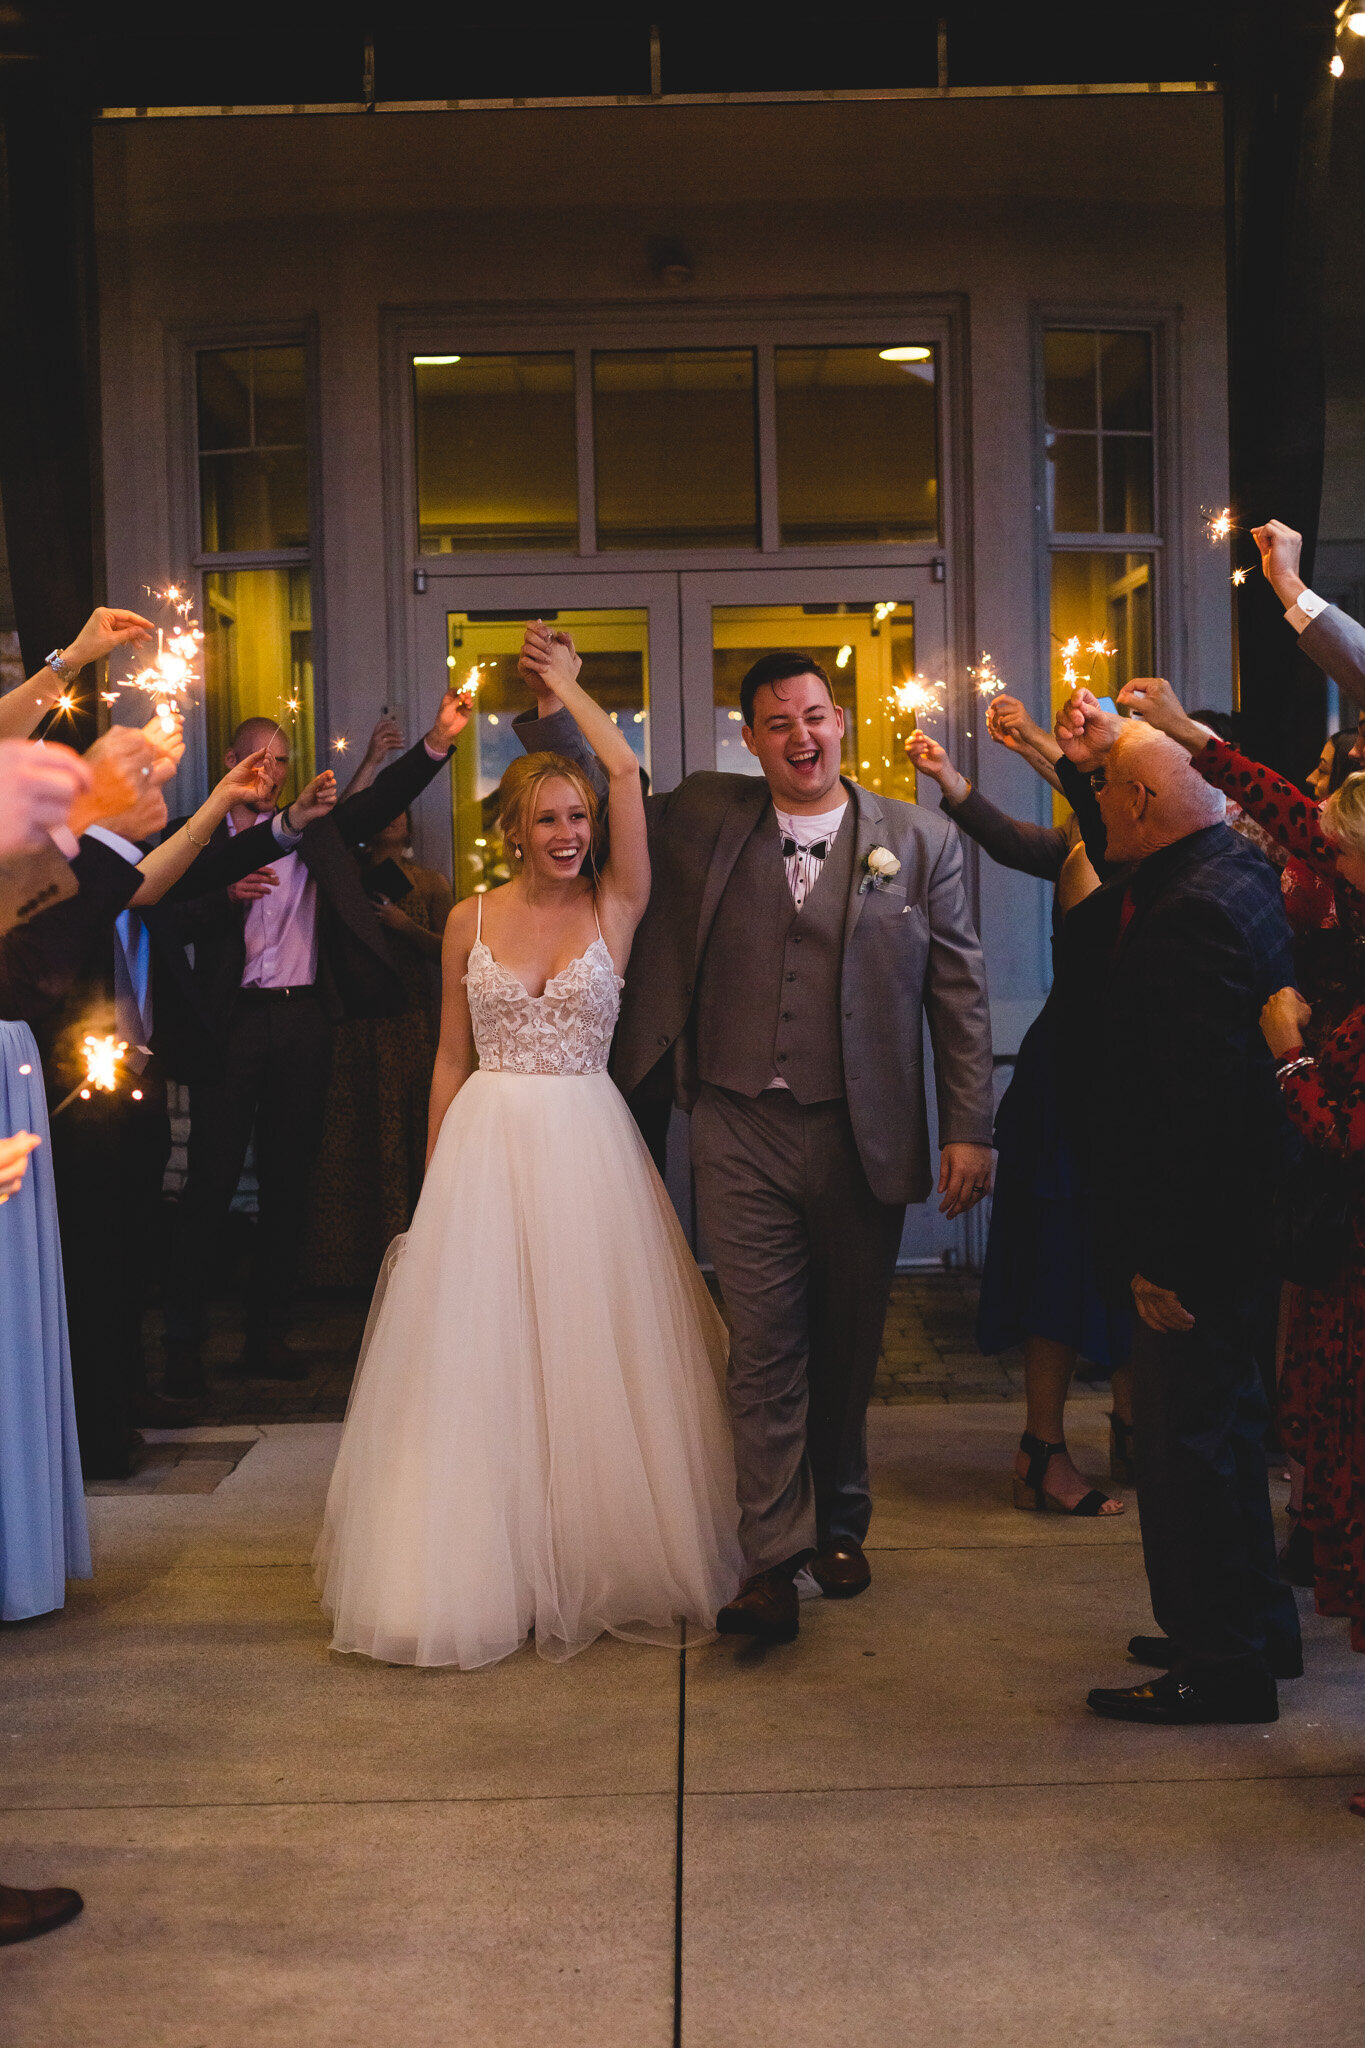 sparkler send off for bride and groom at ohio wedding